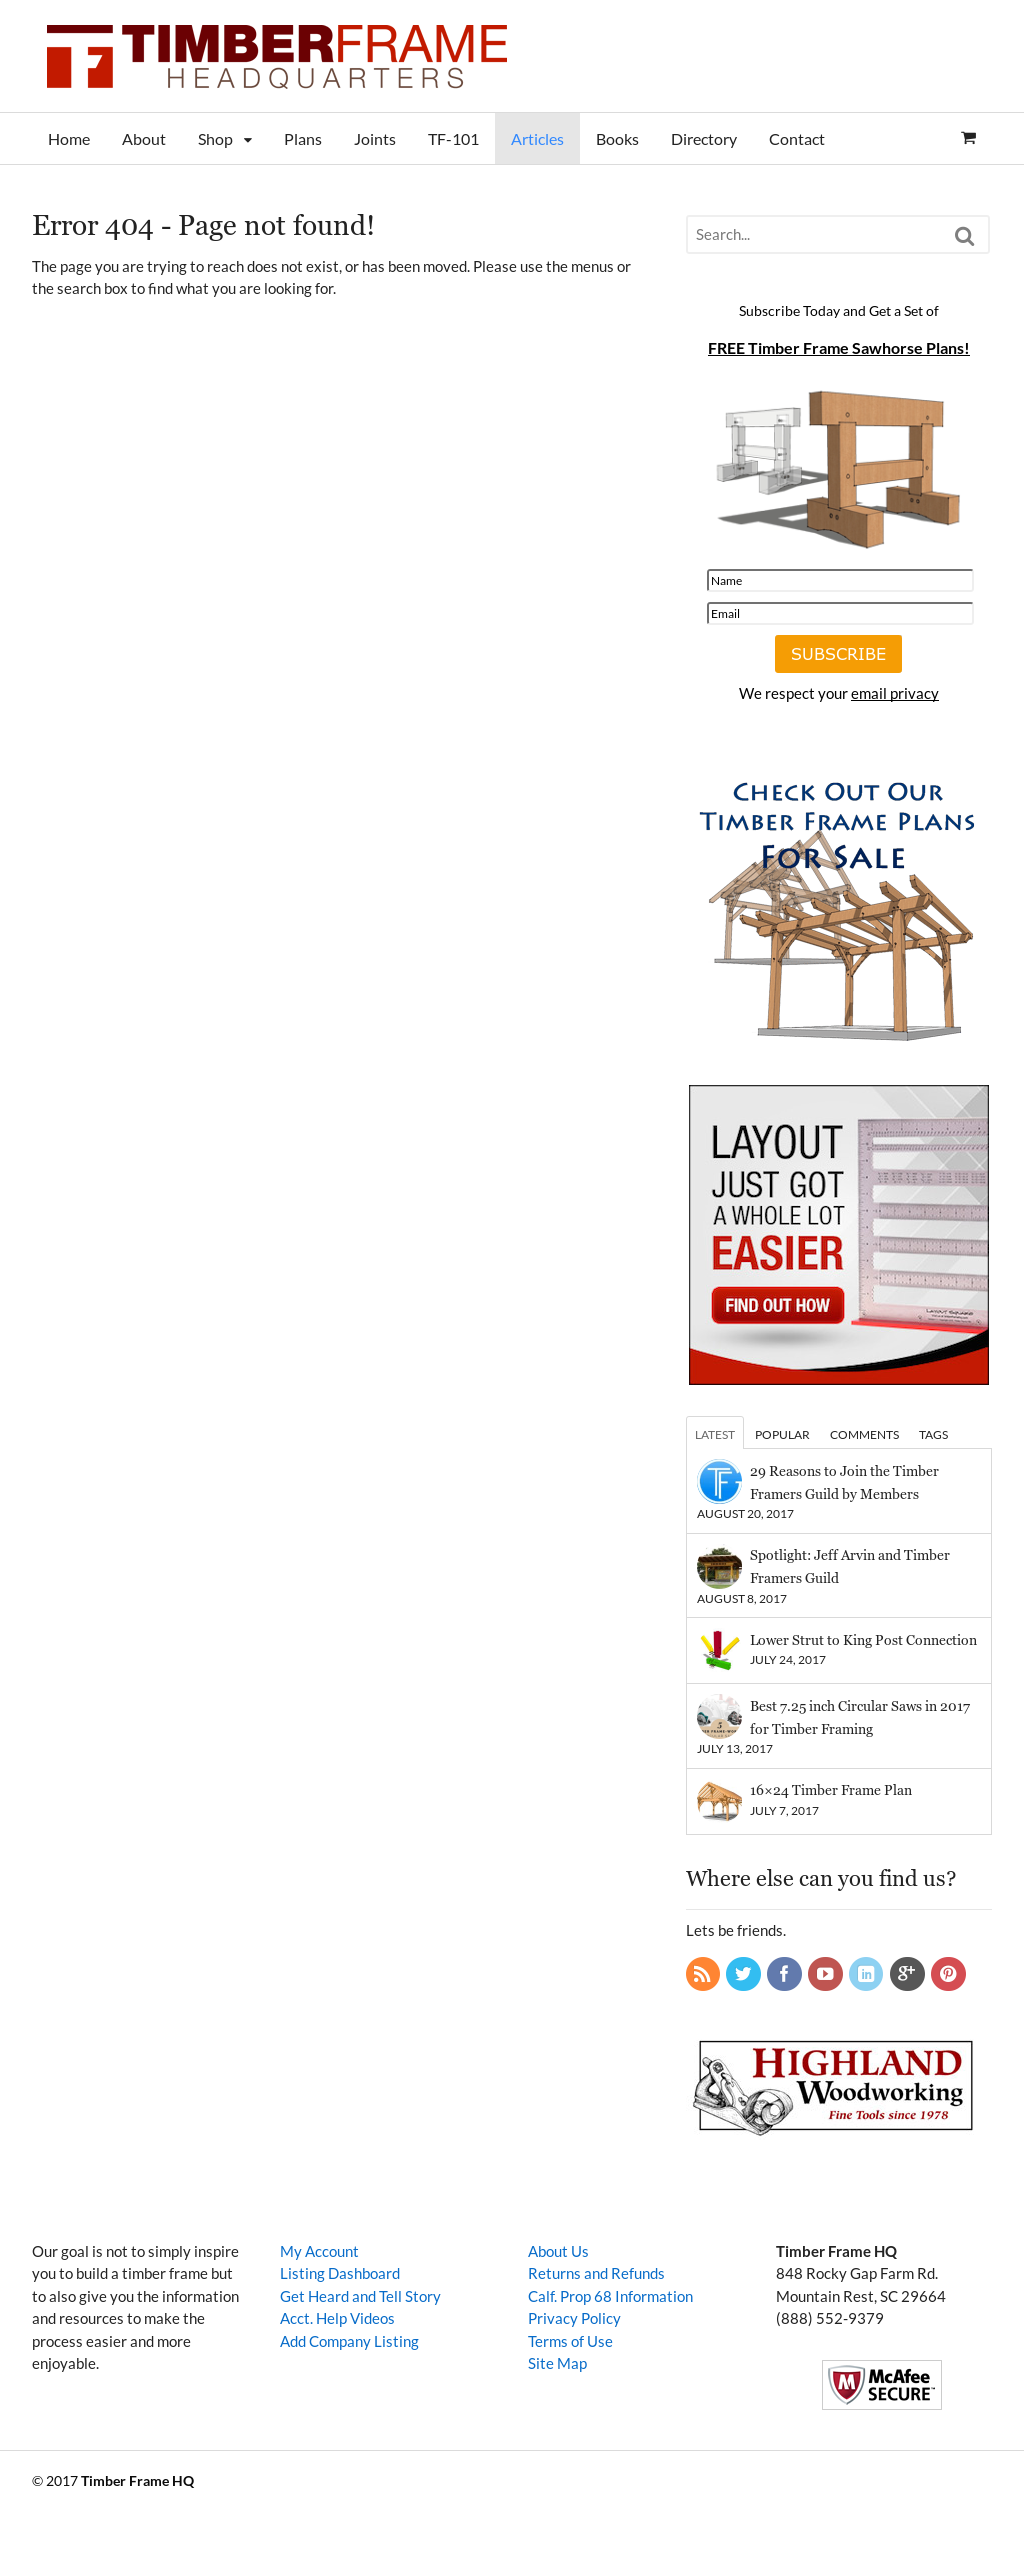 Timber Frame Joints Competitors, Revenue and Employees